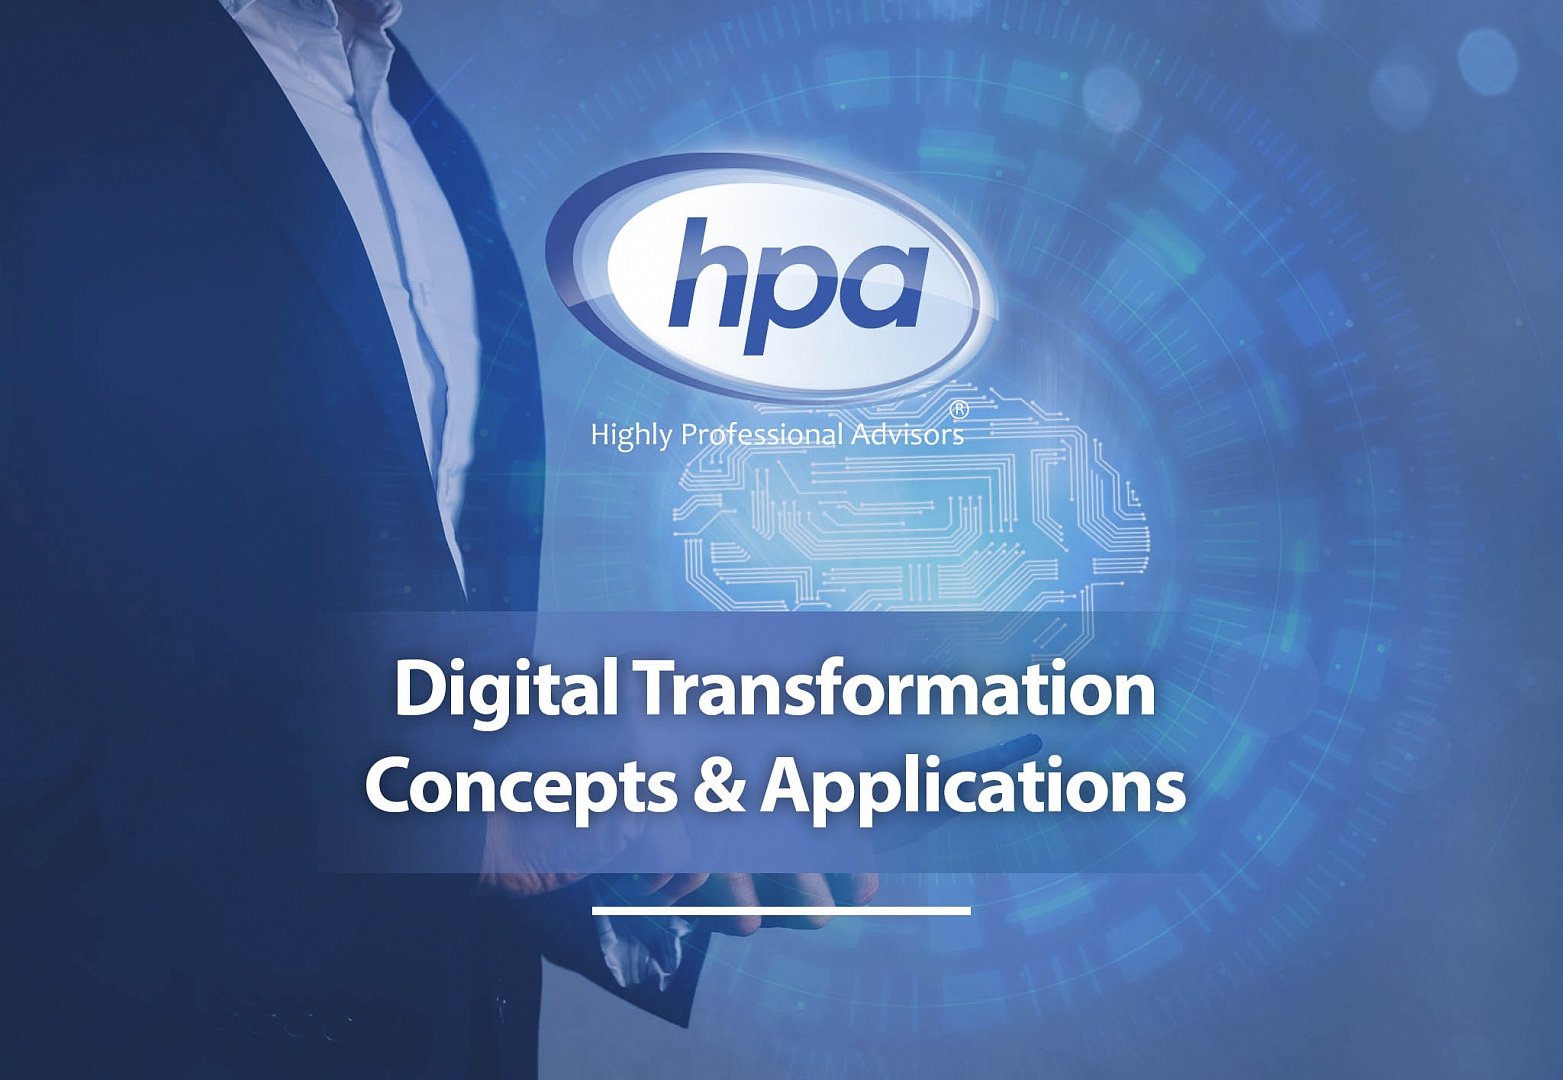 Digital Transformation Concepts & Applications